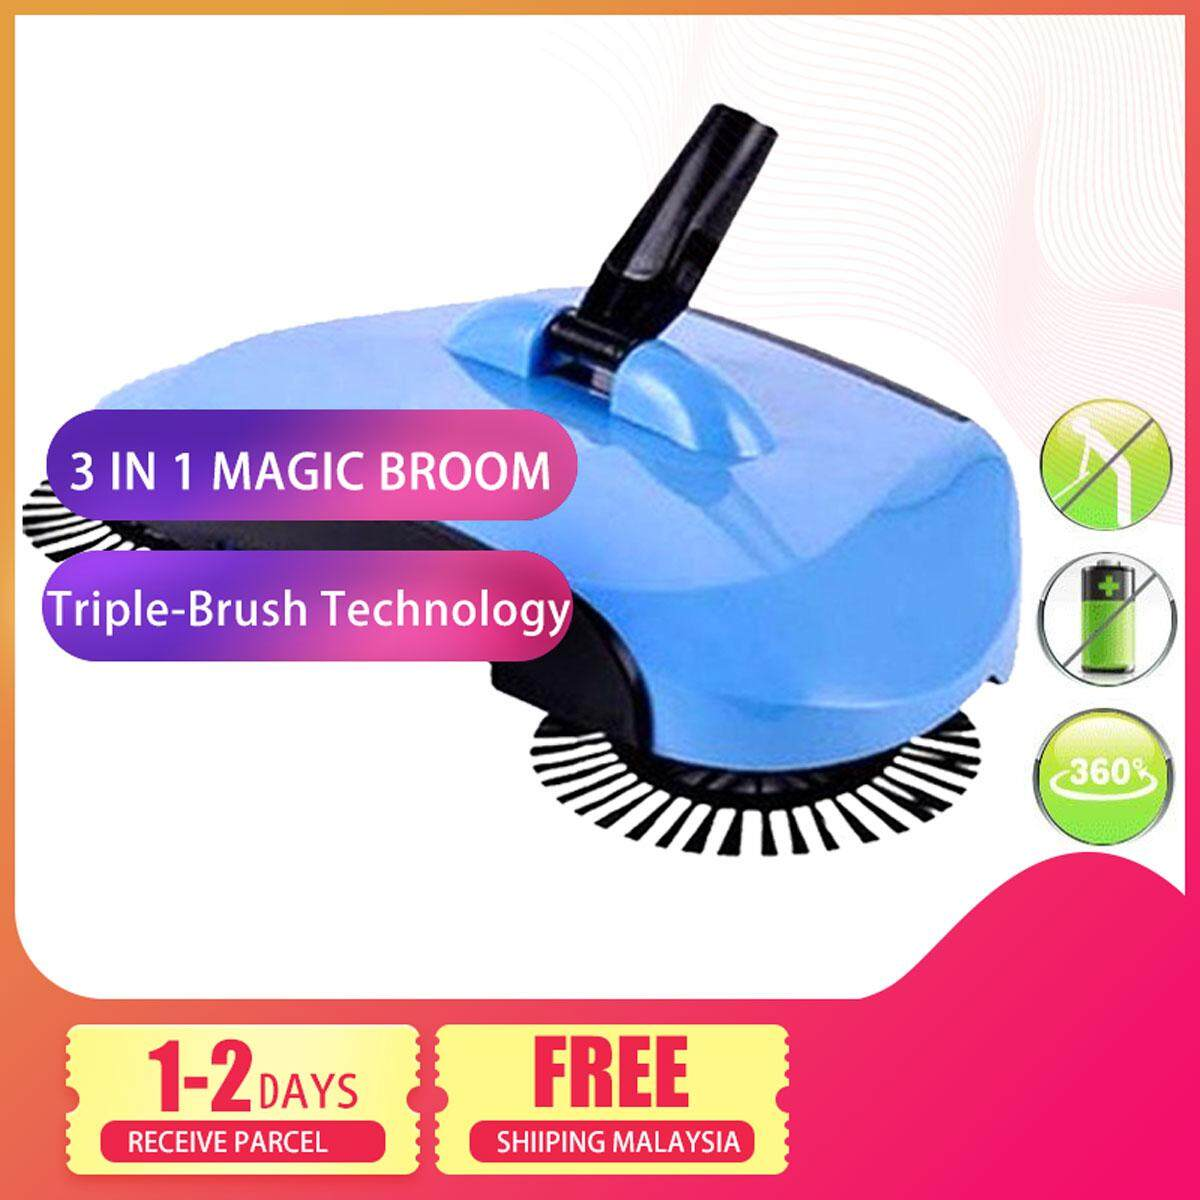 DELLY AUTOMATIC SMART HAND 3IN1 PUSH MAGIC BROOM SWEEPER MOP HOME HOUSE BLUE COLOUR BR-11B